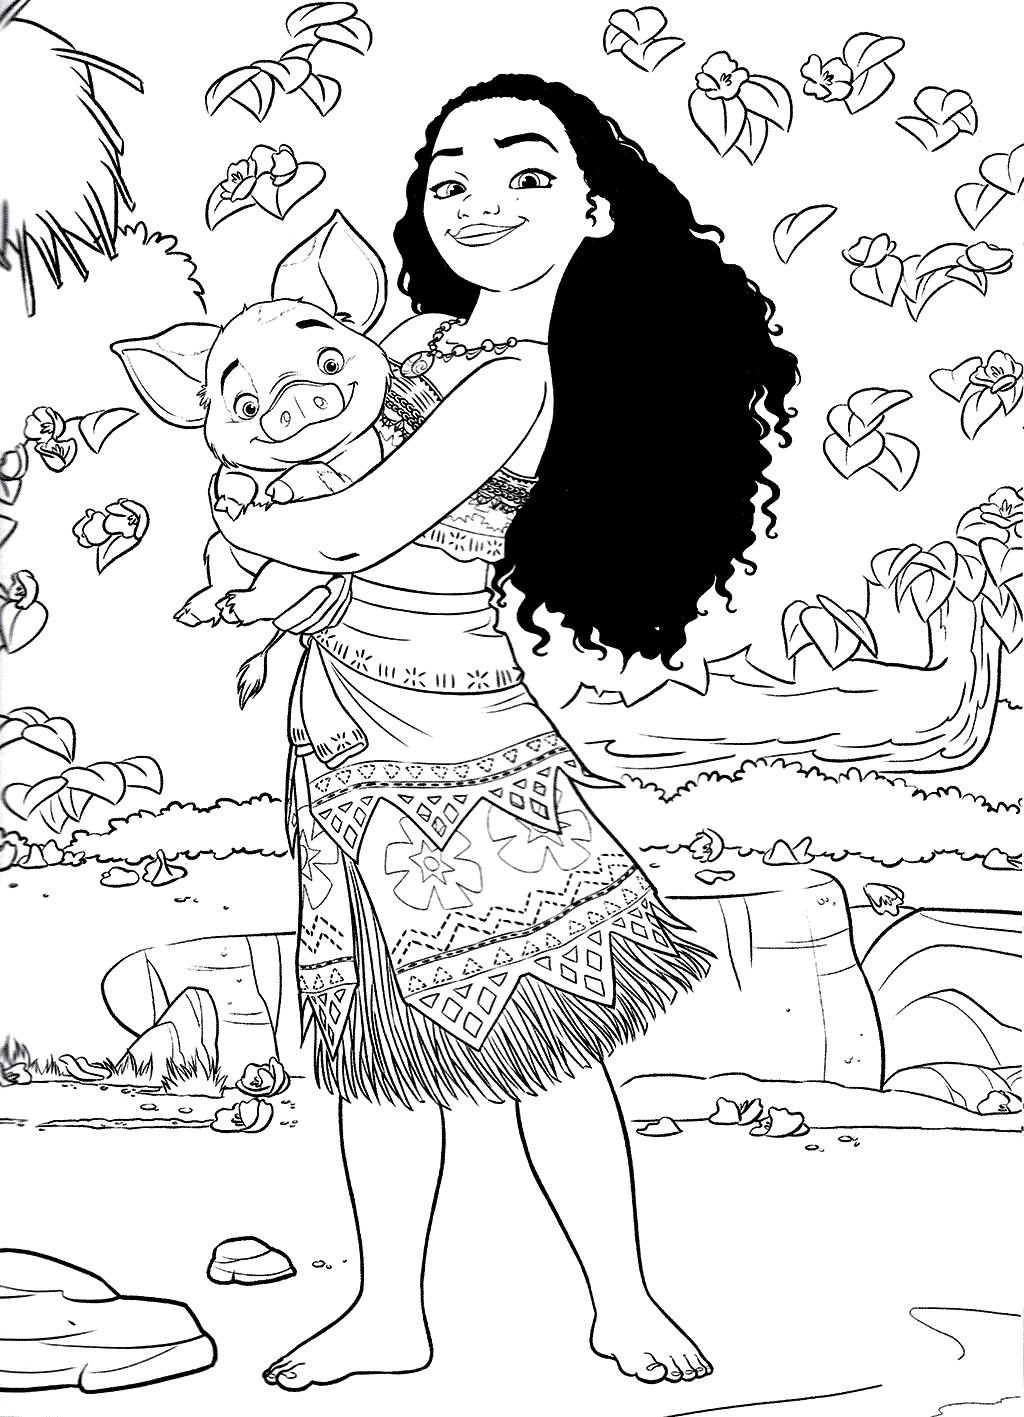 Top 10 Moana Coloring Pages Free Printables Free